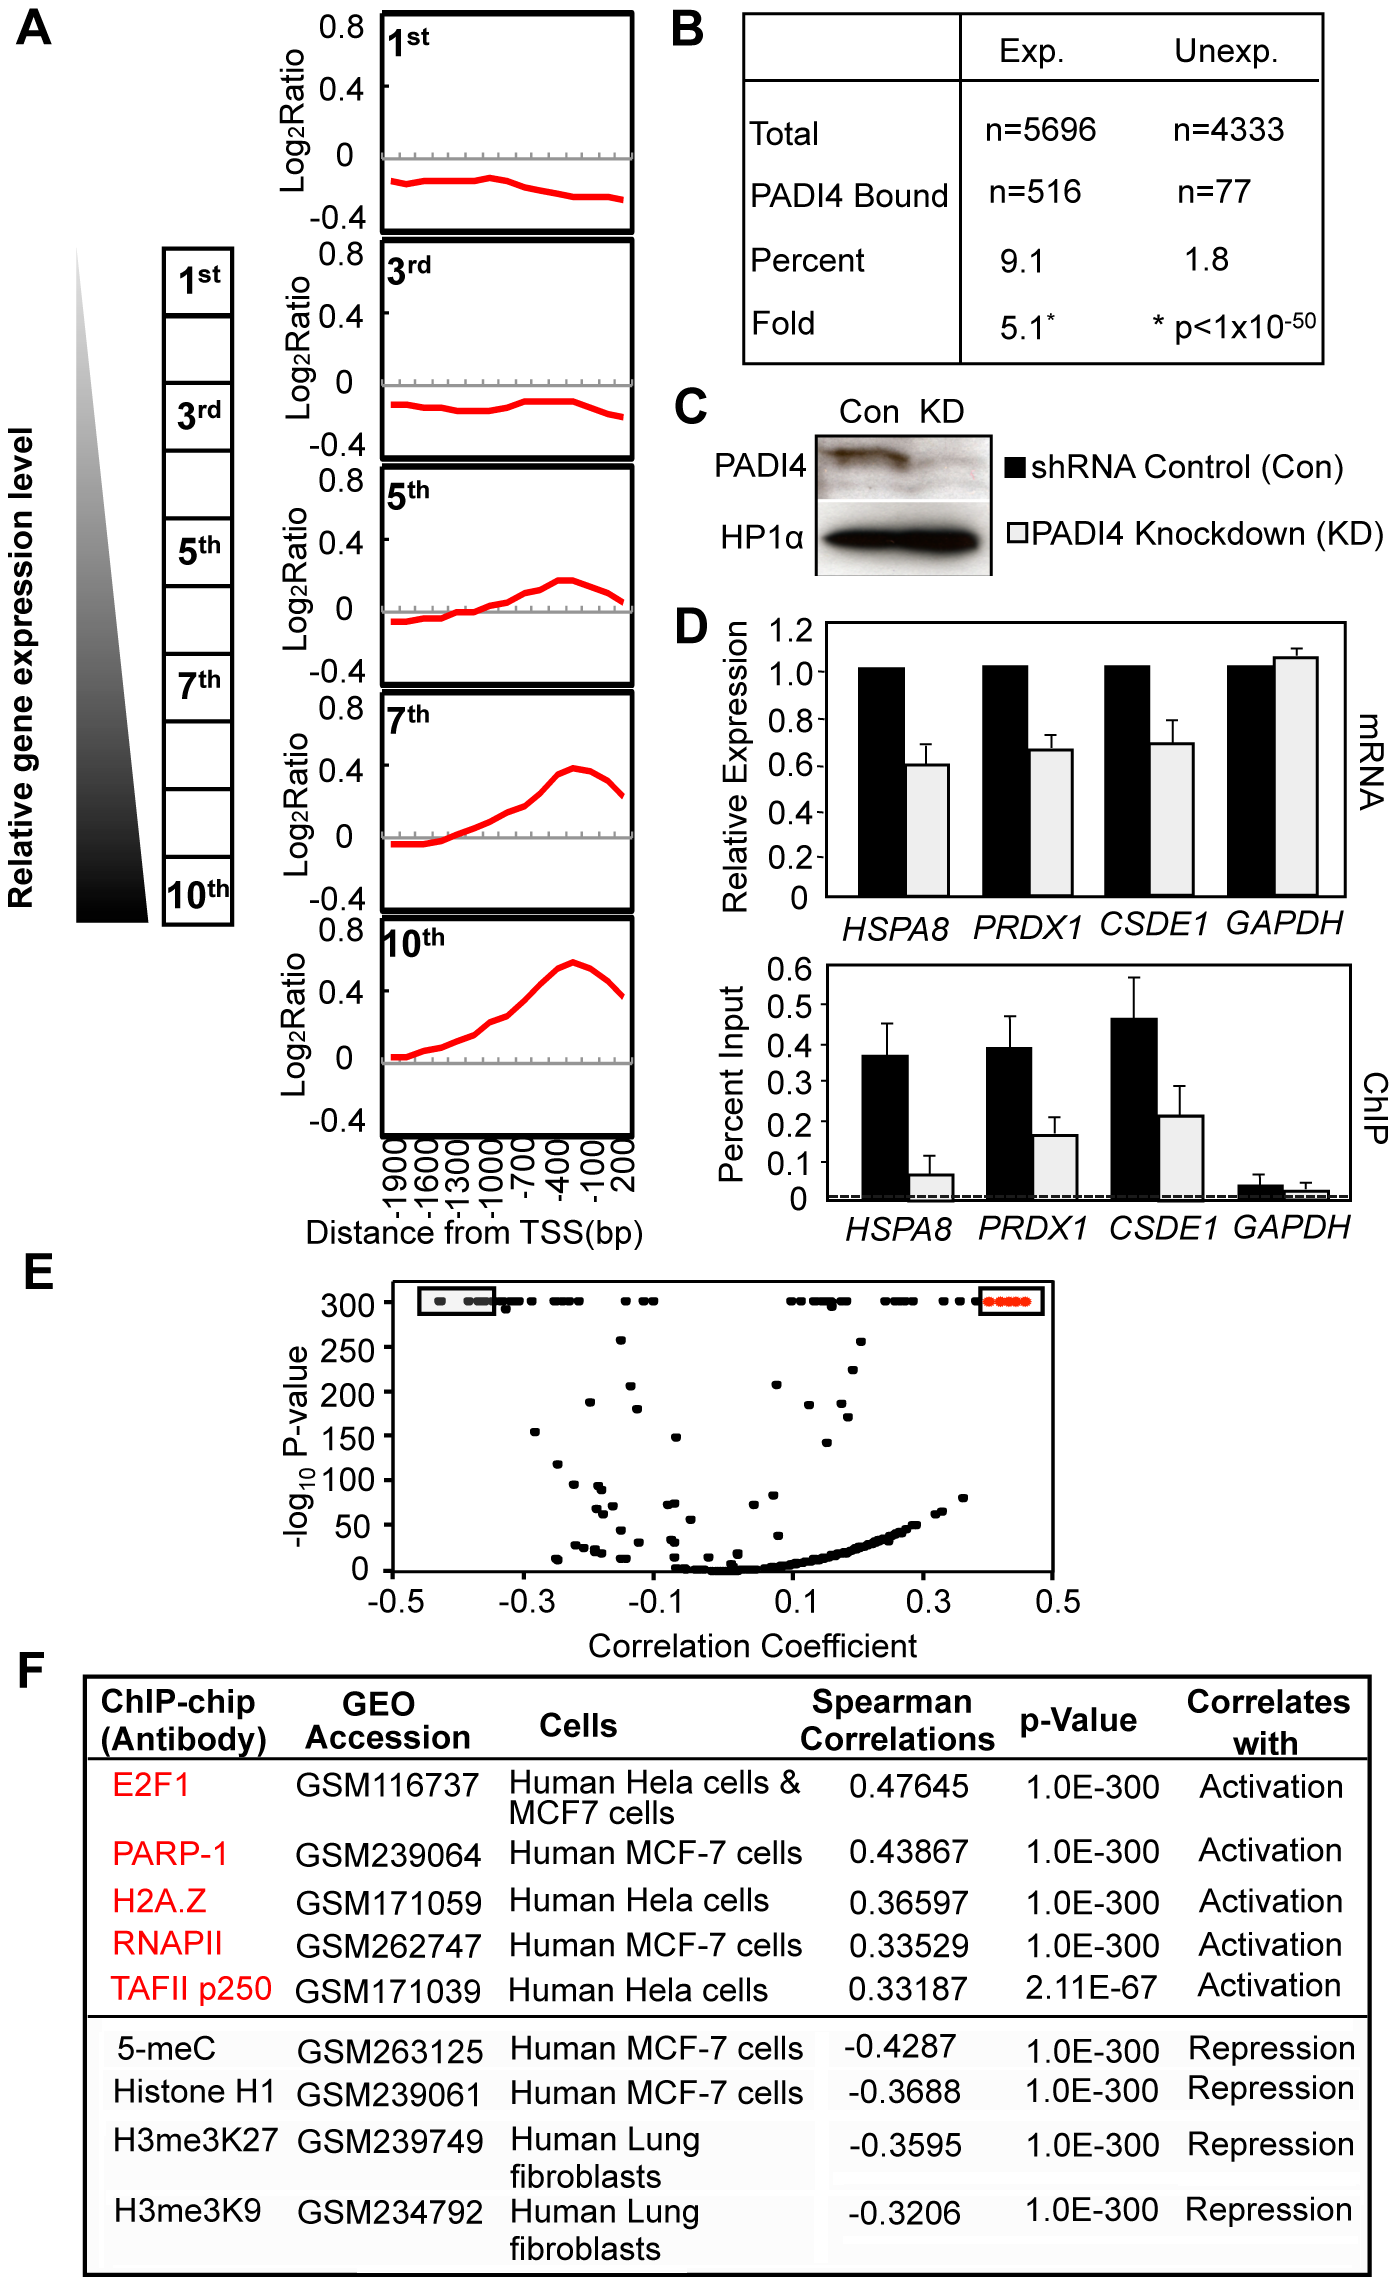 PADI4 recruitment at gene promoters correlates with the actively transcribed genes.